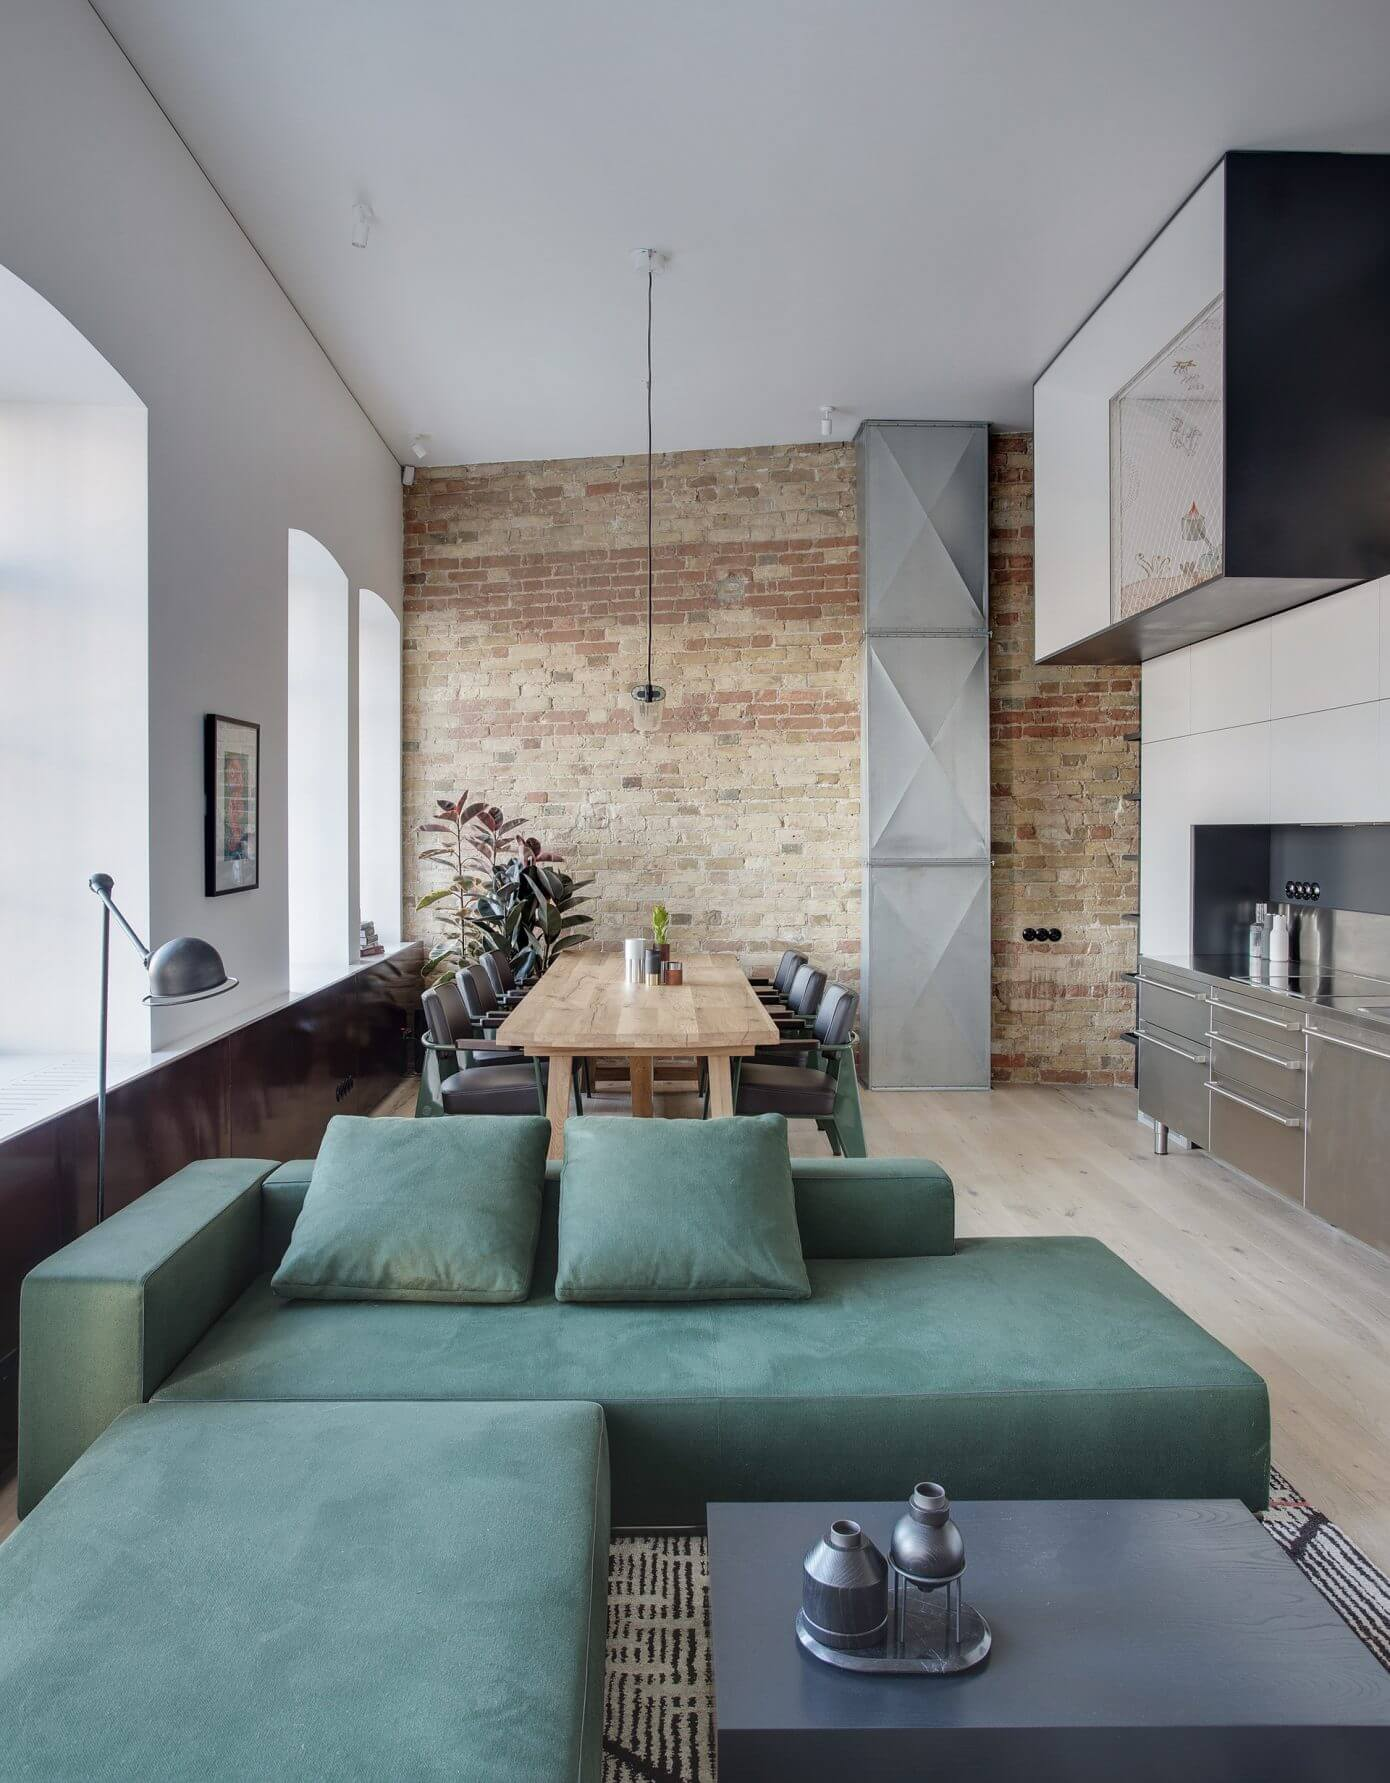 002-bj-apartment-2b-group   HomeAdore